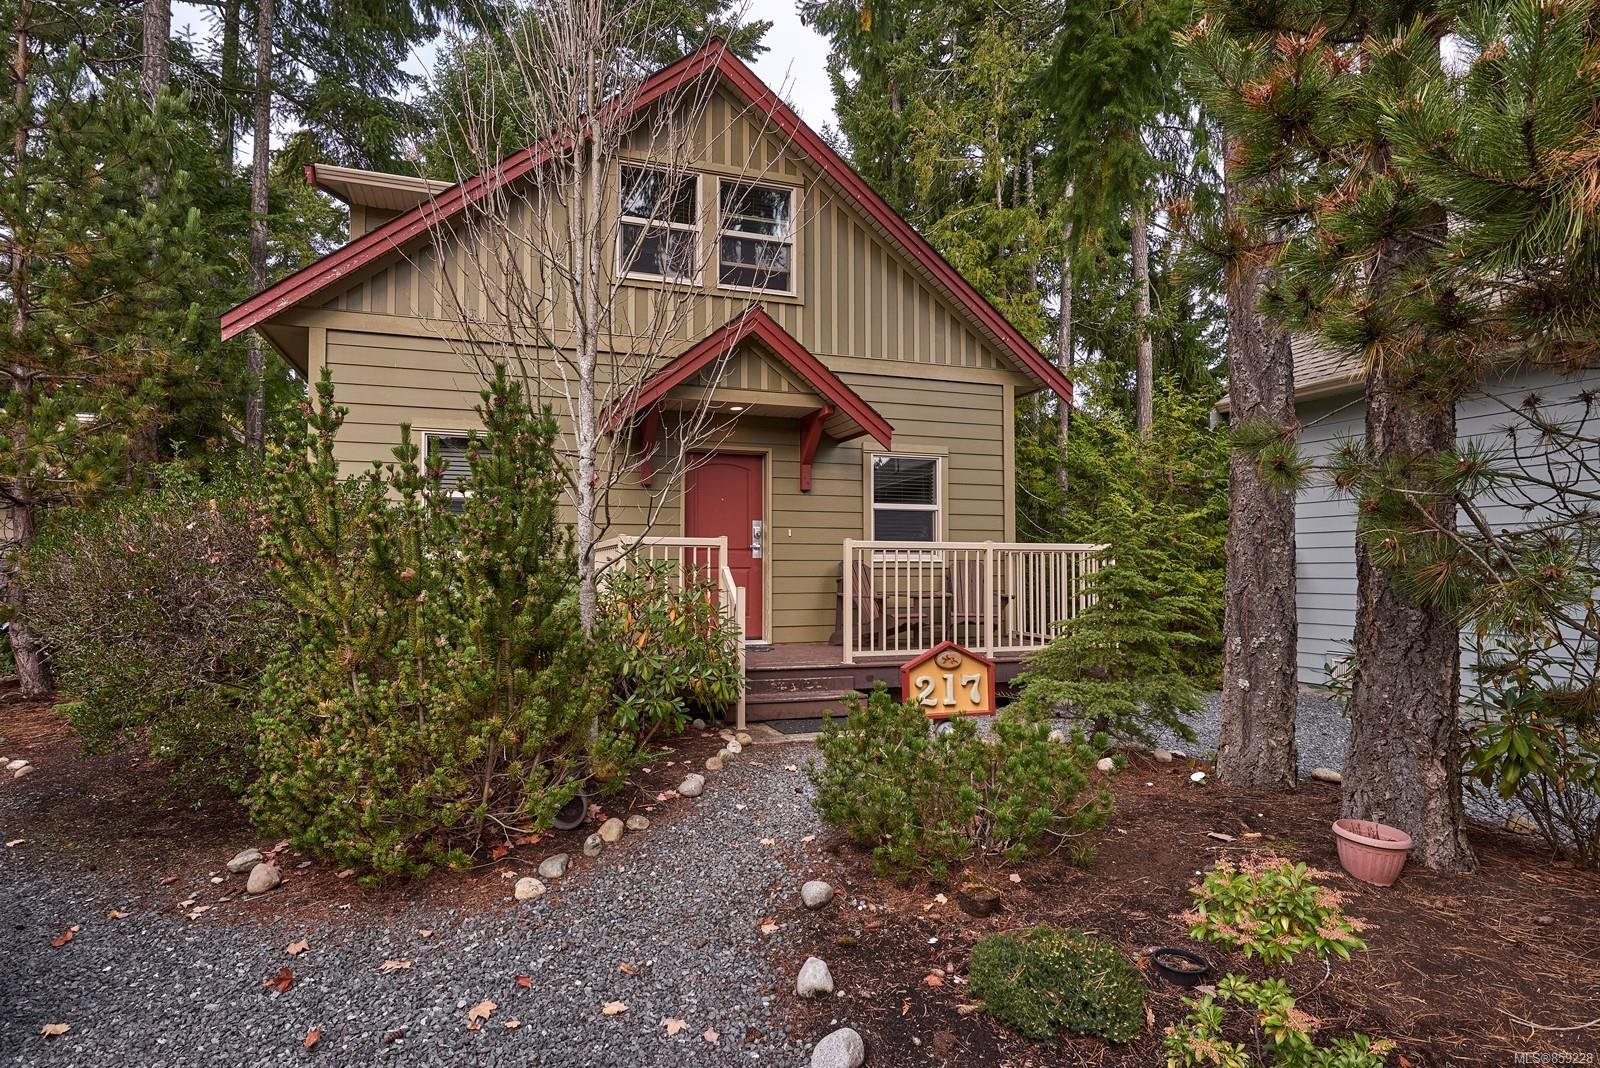 Main Photo: 217 1130 Resort Dr in : PQ Parksville Row/Townhouse for sale (Parksville/Qualicum)  : MLS®# 859228